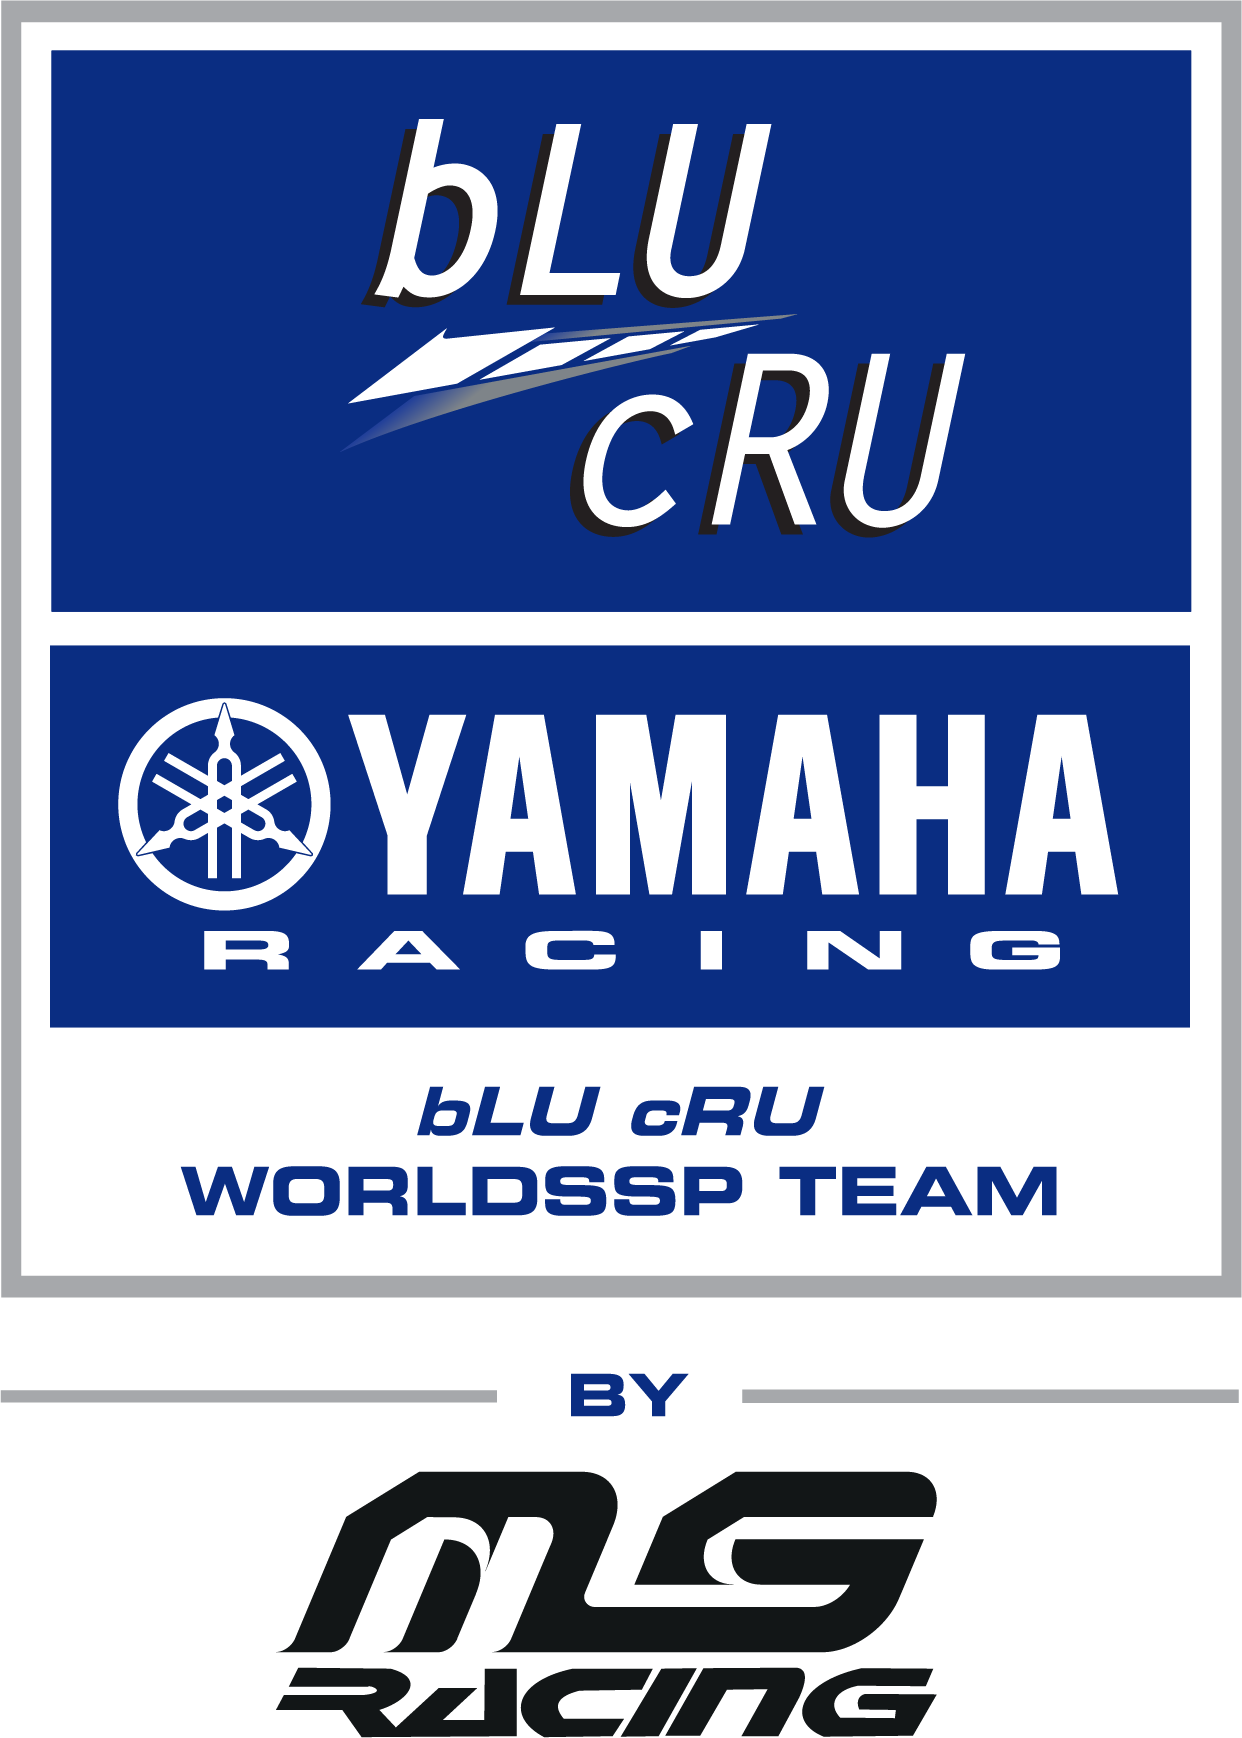 bLU cRU Yamaha Ms Racing